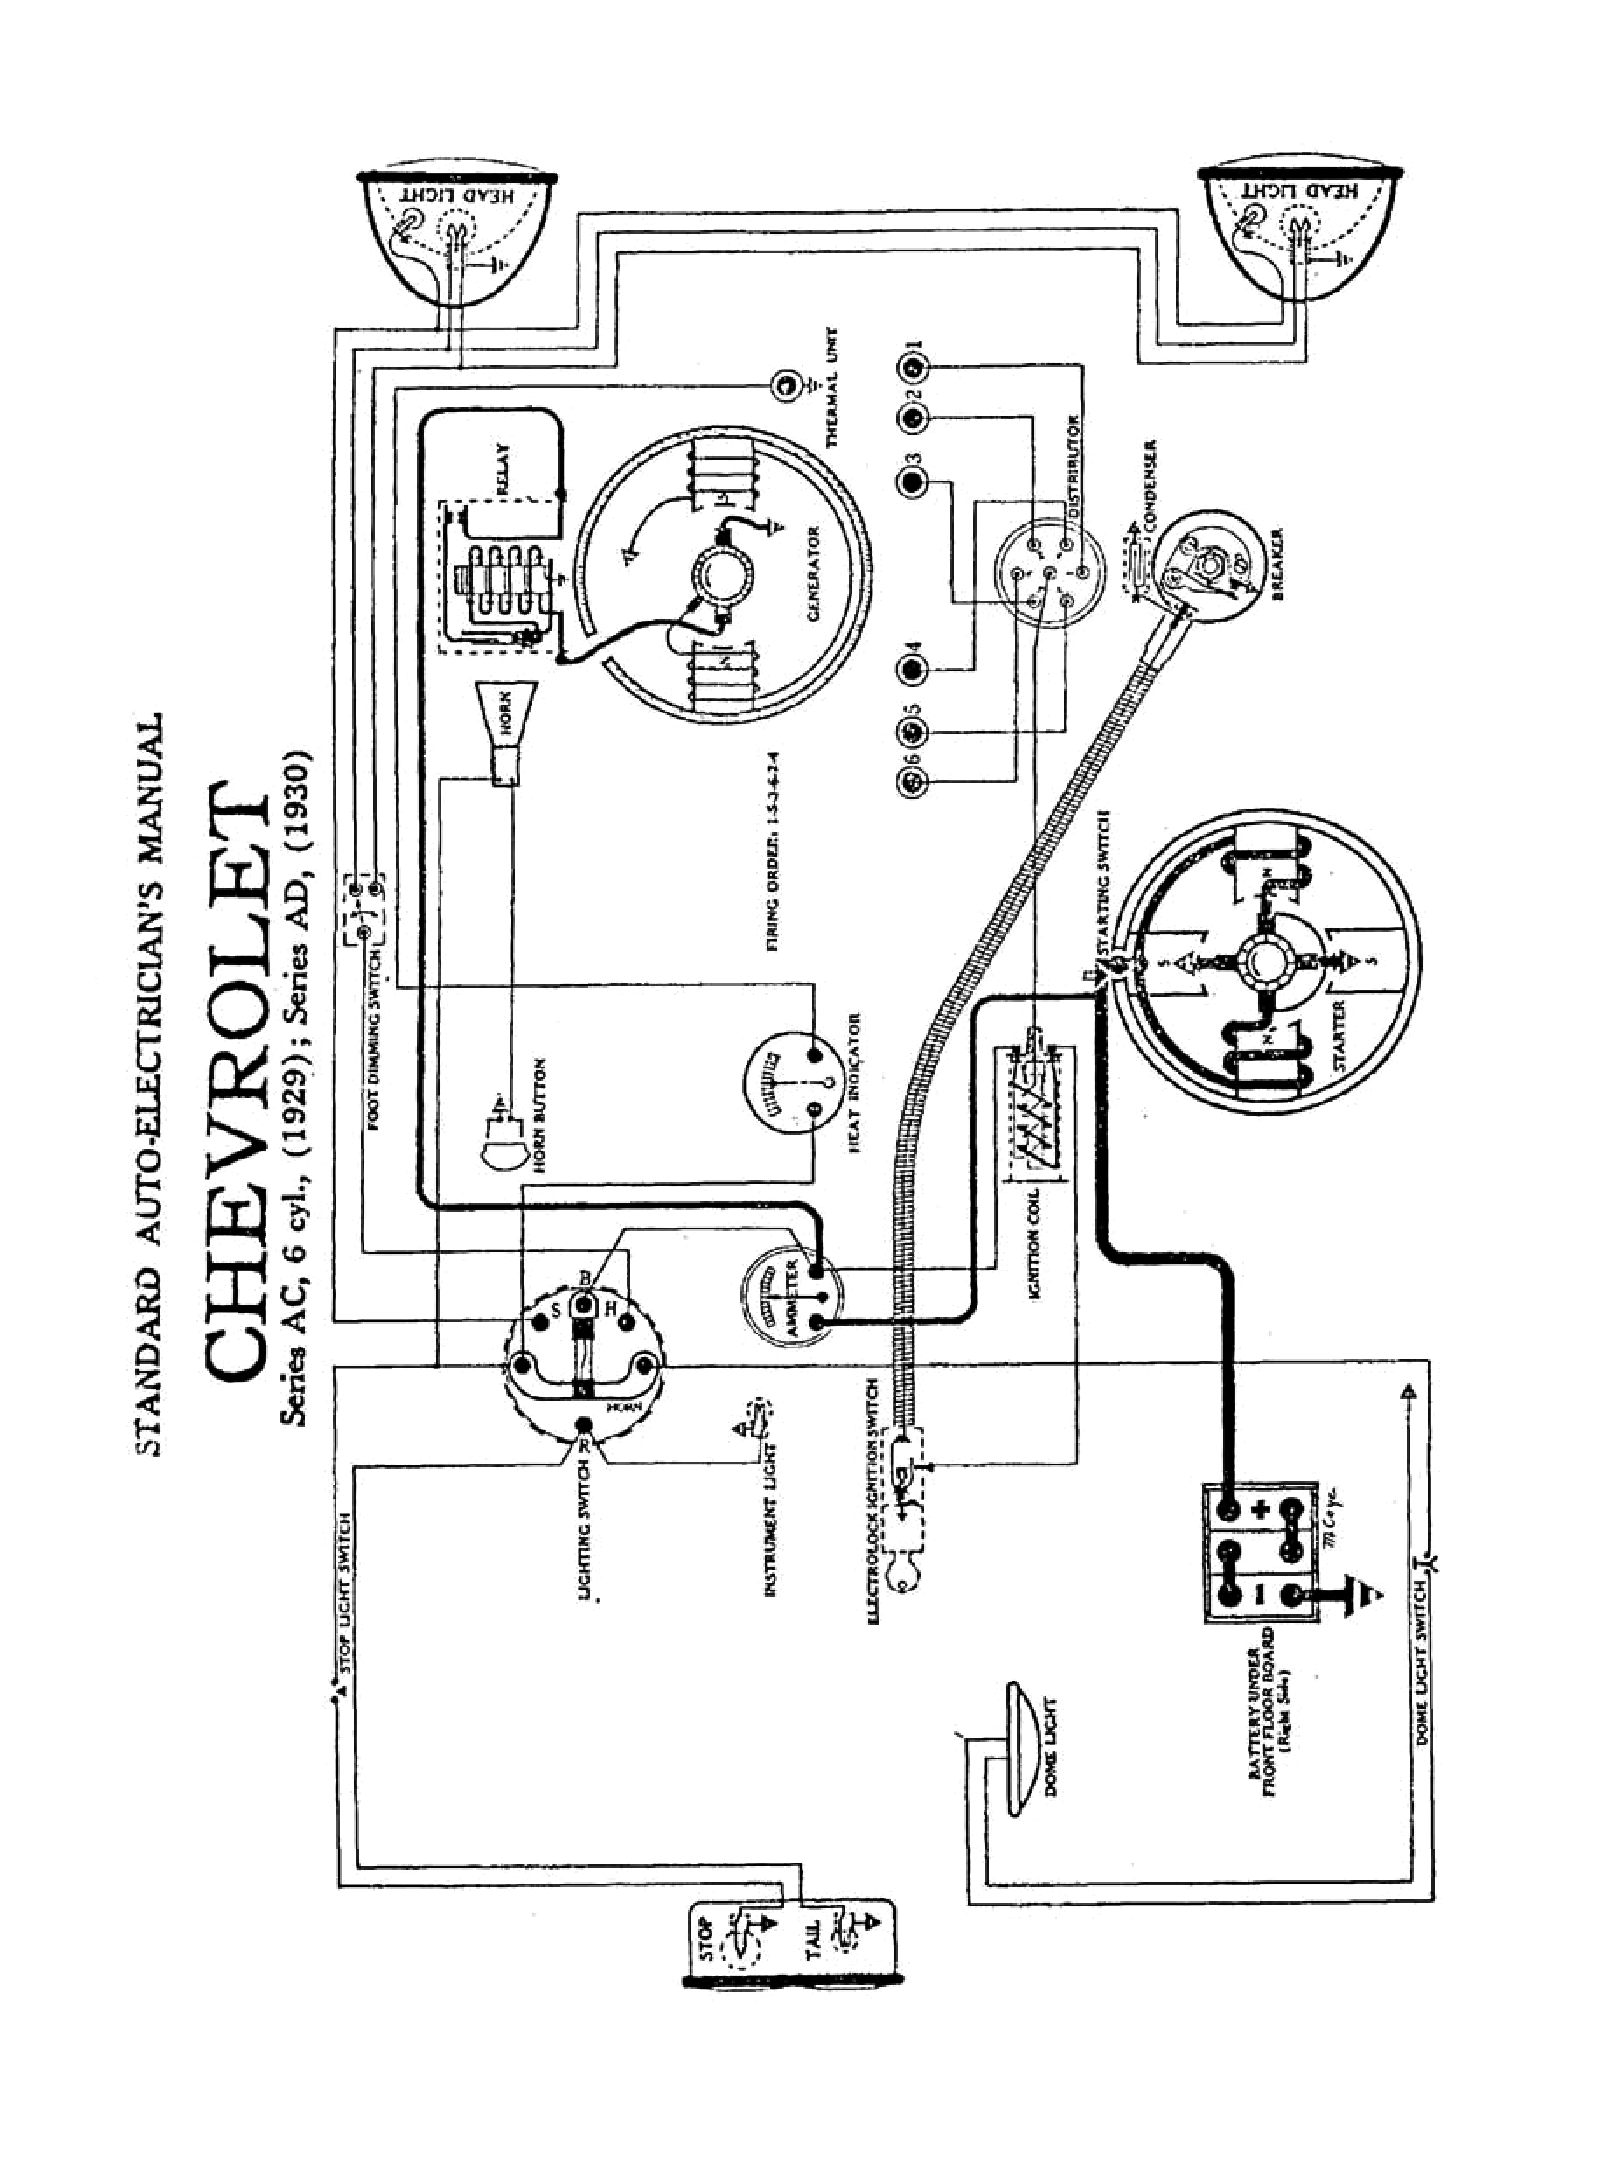 Chevy Wiring Diagrams Pontiac Ac Diagram 1929 Series Model